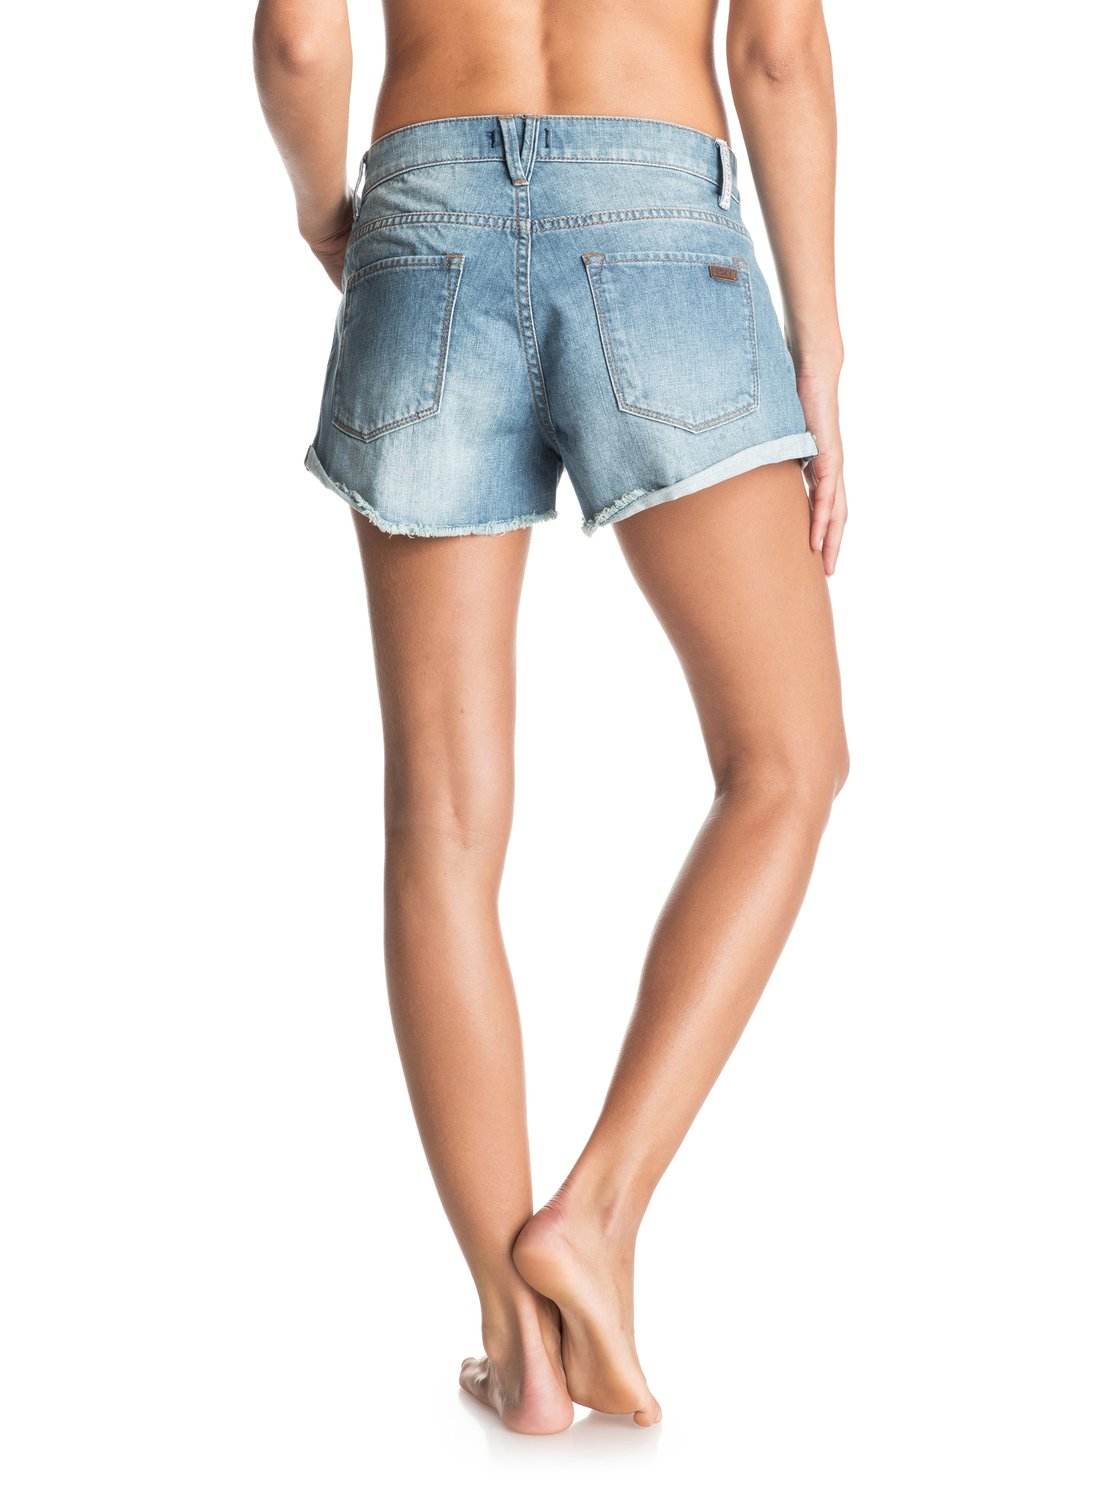 Find great deals on eBay for hue boyfriend shorts. Shop with confidence.